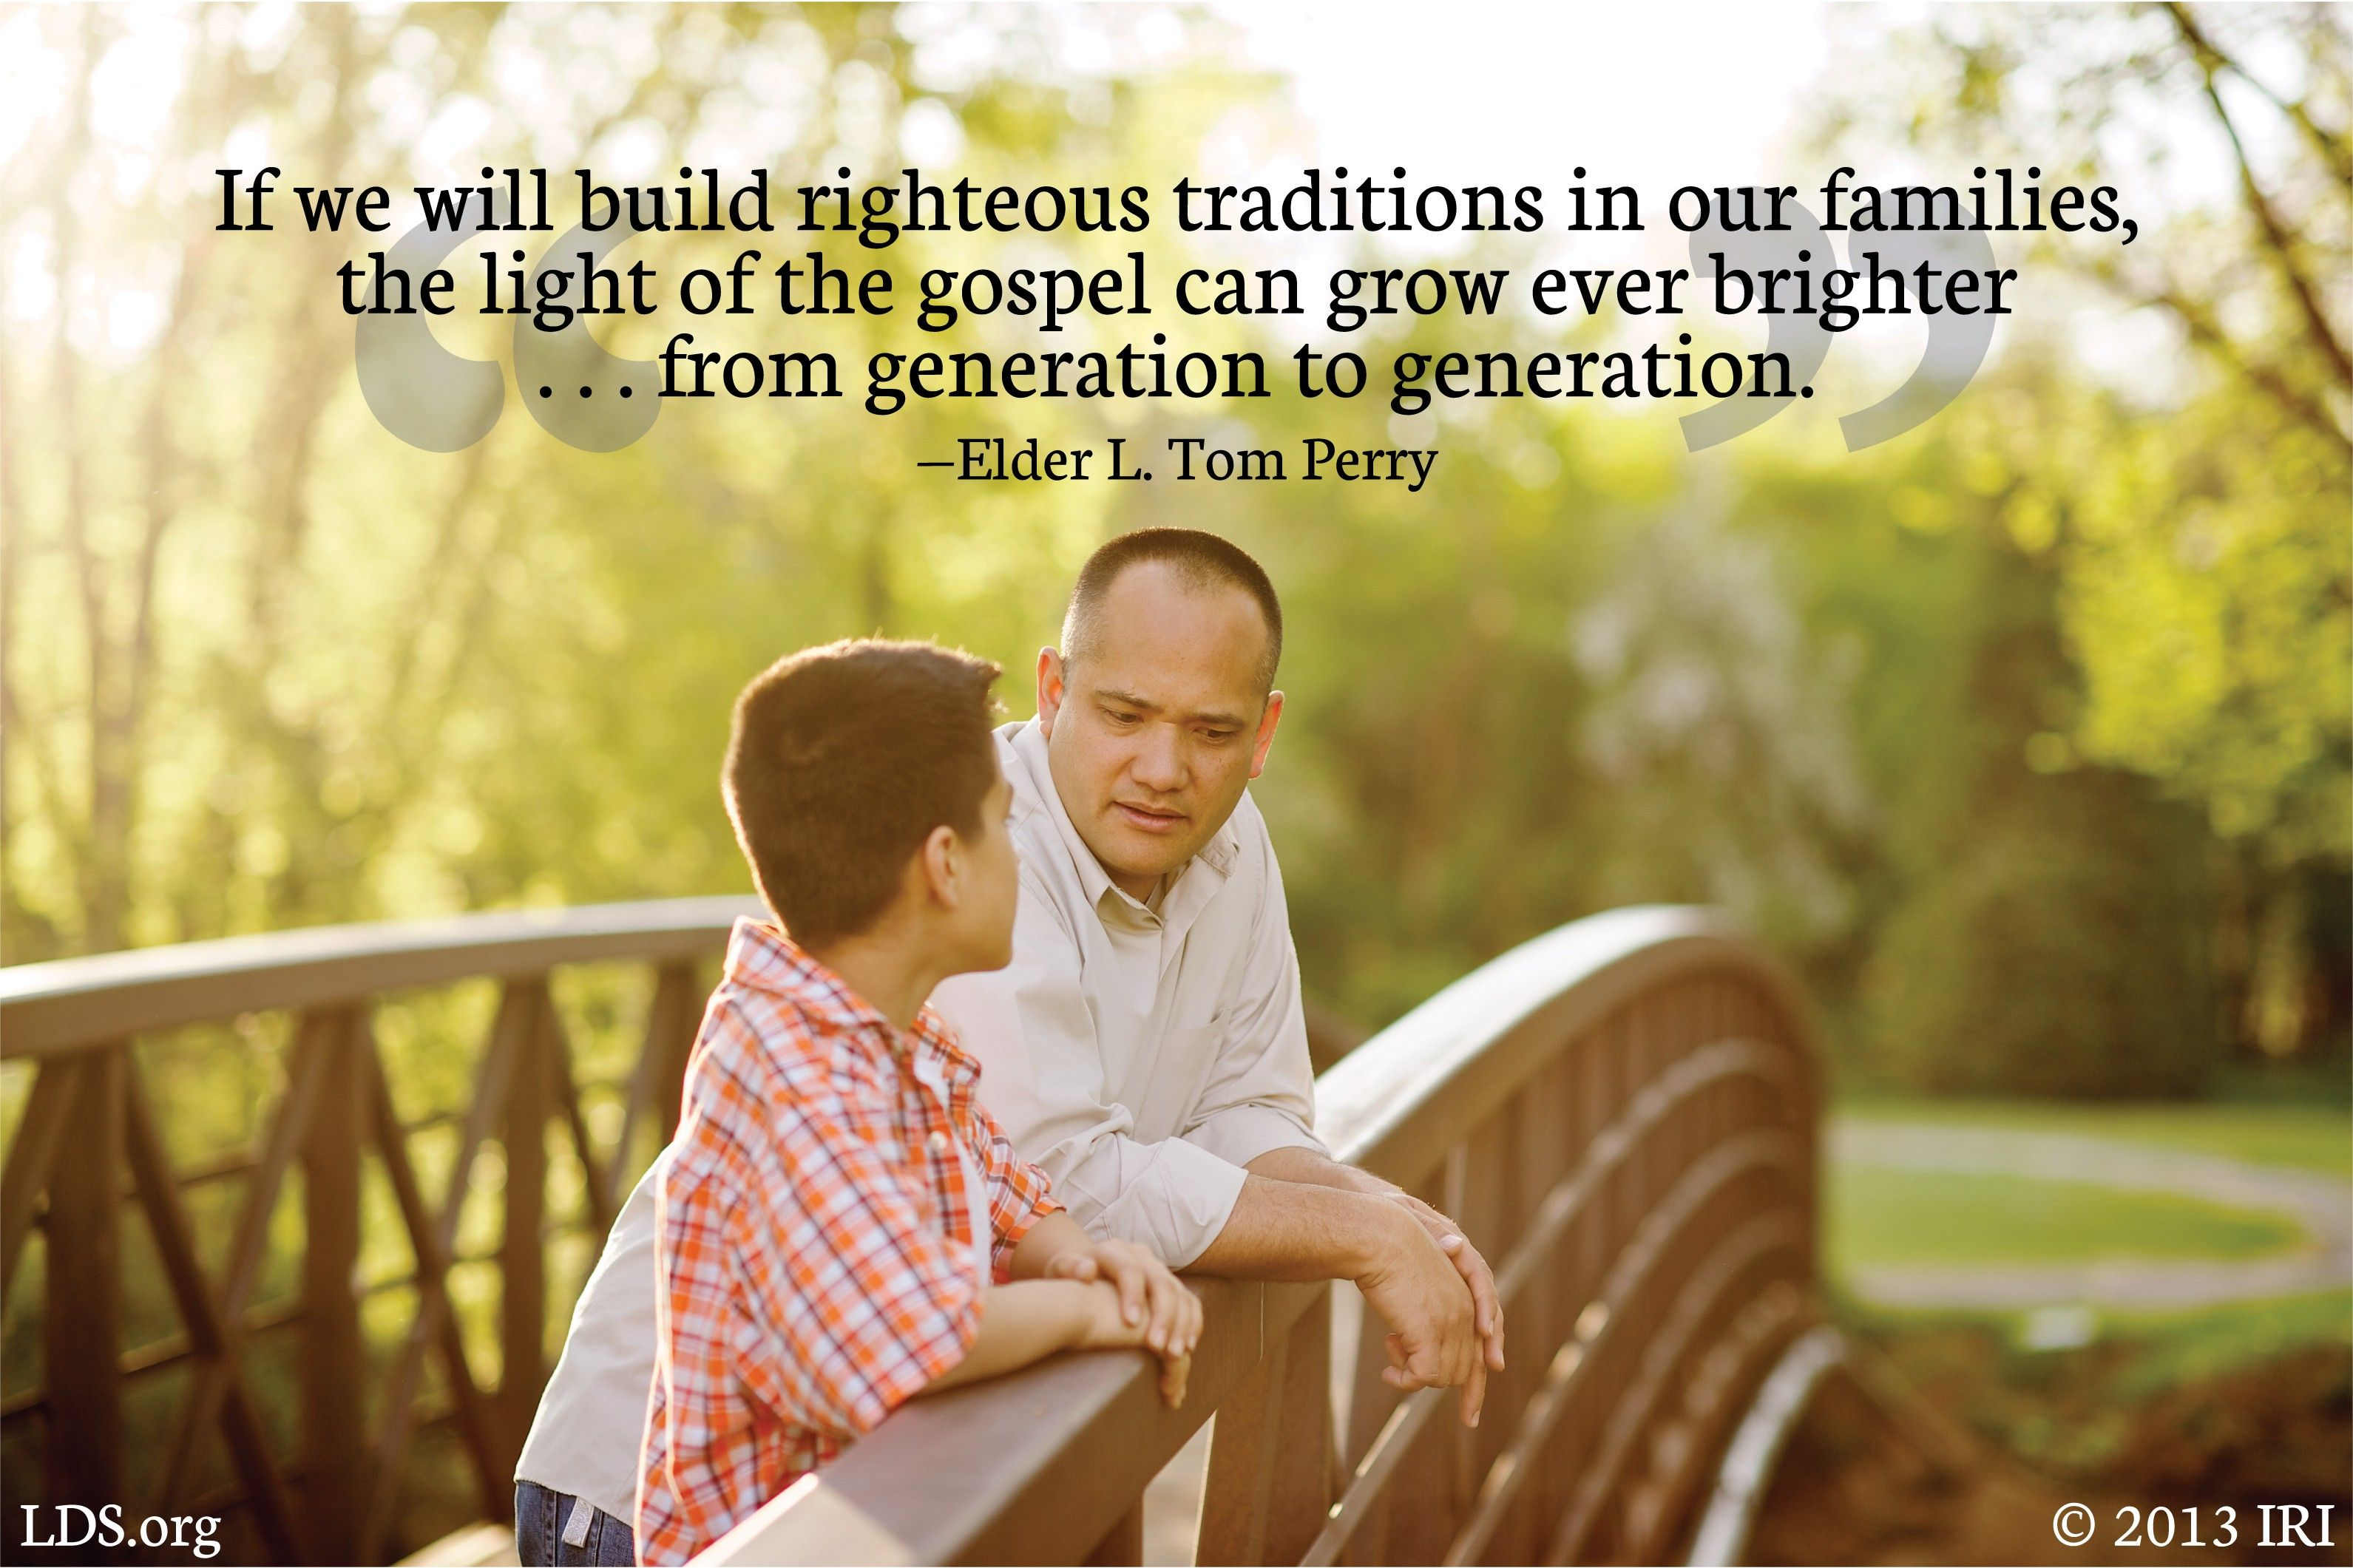 """""""If we will build righteous traditions in our families, the light of the gospel can grow ever brighter … from generation to generation.""""—Elder L. Tom Perry, """"Family Traditions"""""""